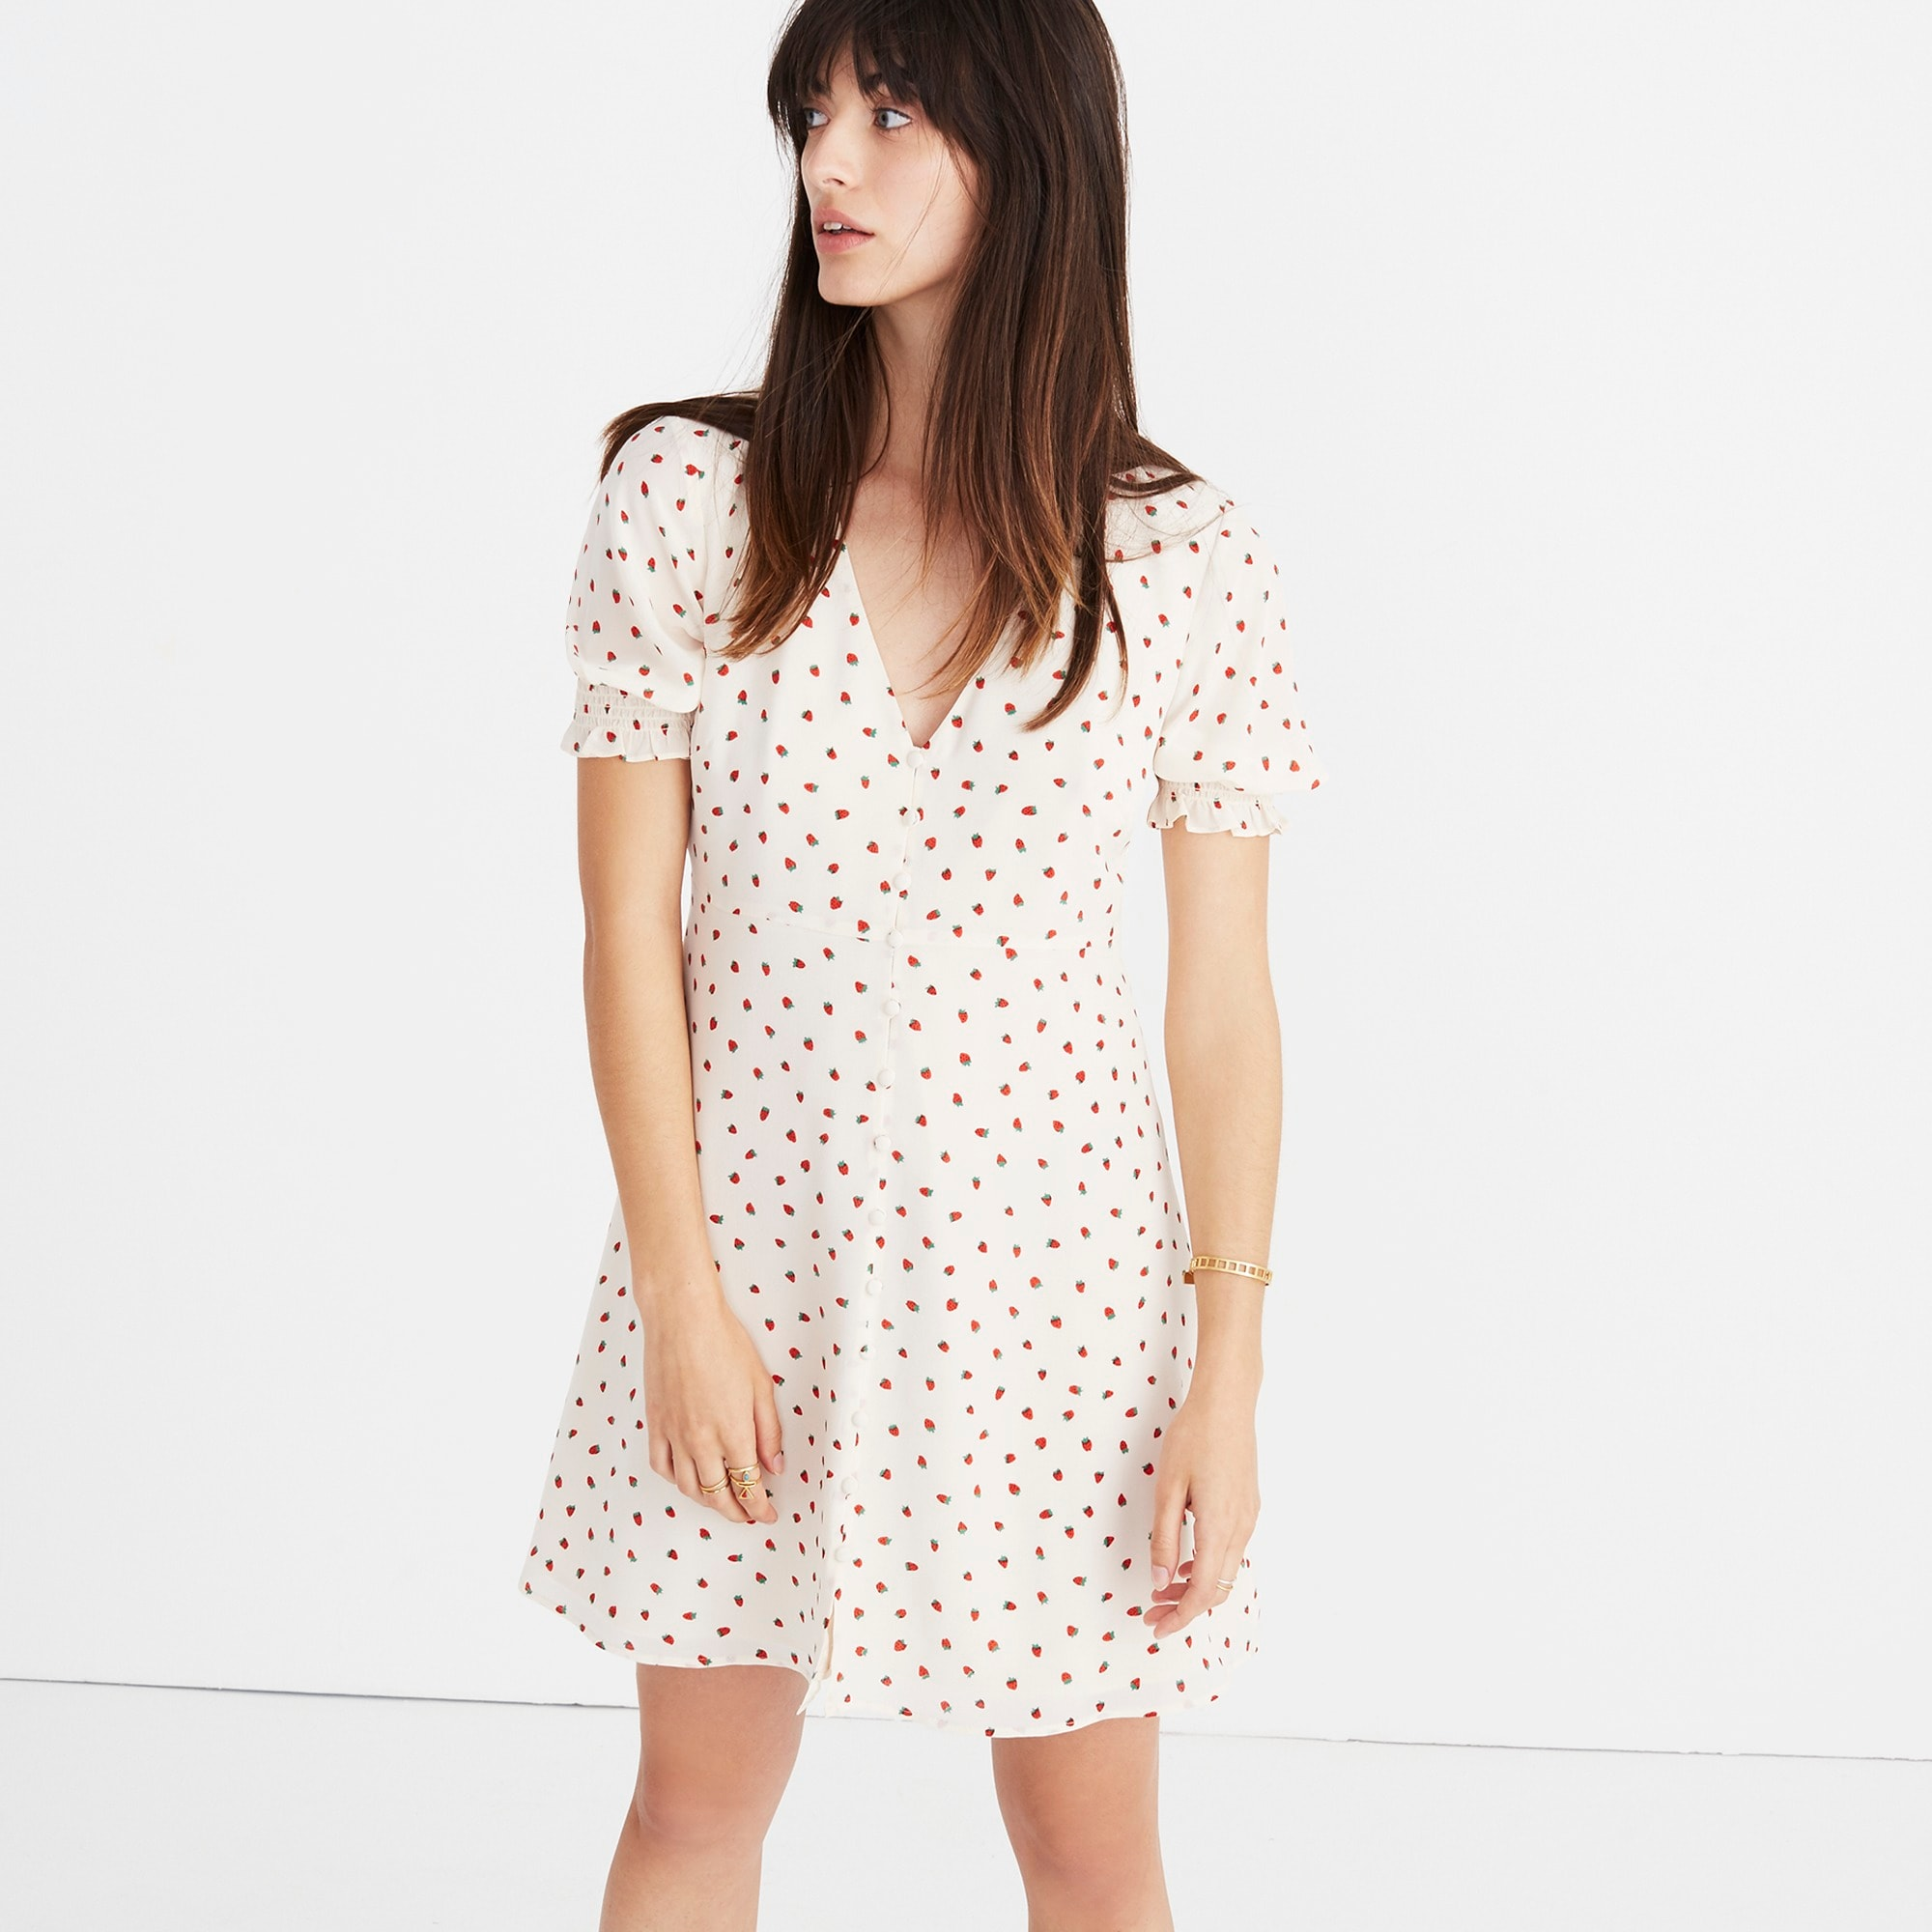 Madewell silk clover button-front dress in fresh strawberries women j.crew in good company c